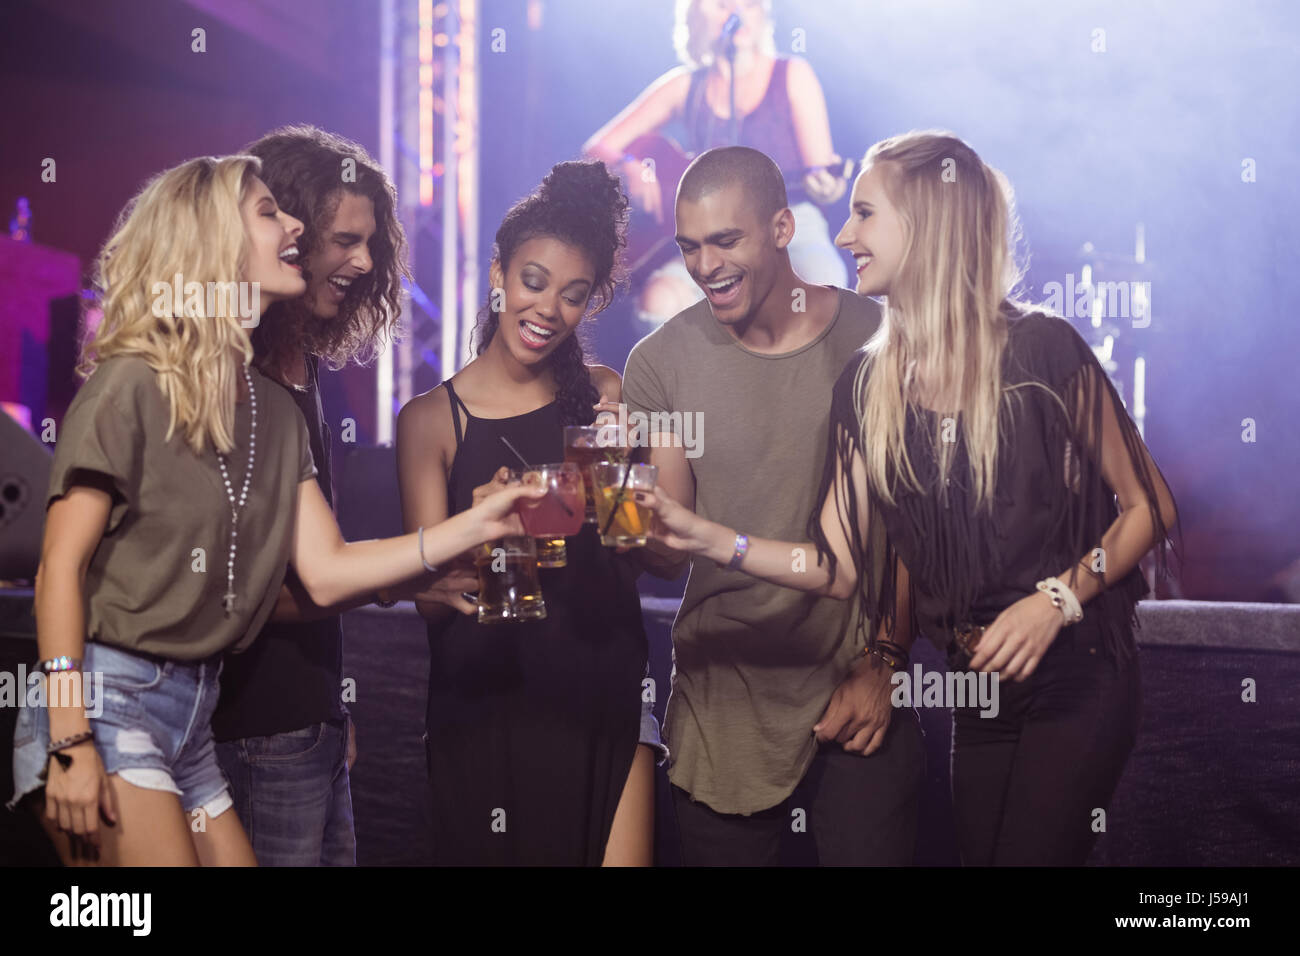 Happy friends toasting beer glasses with performer singing in background at nightclub Stock Photo